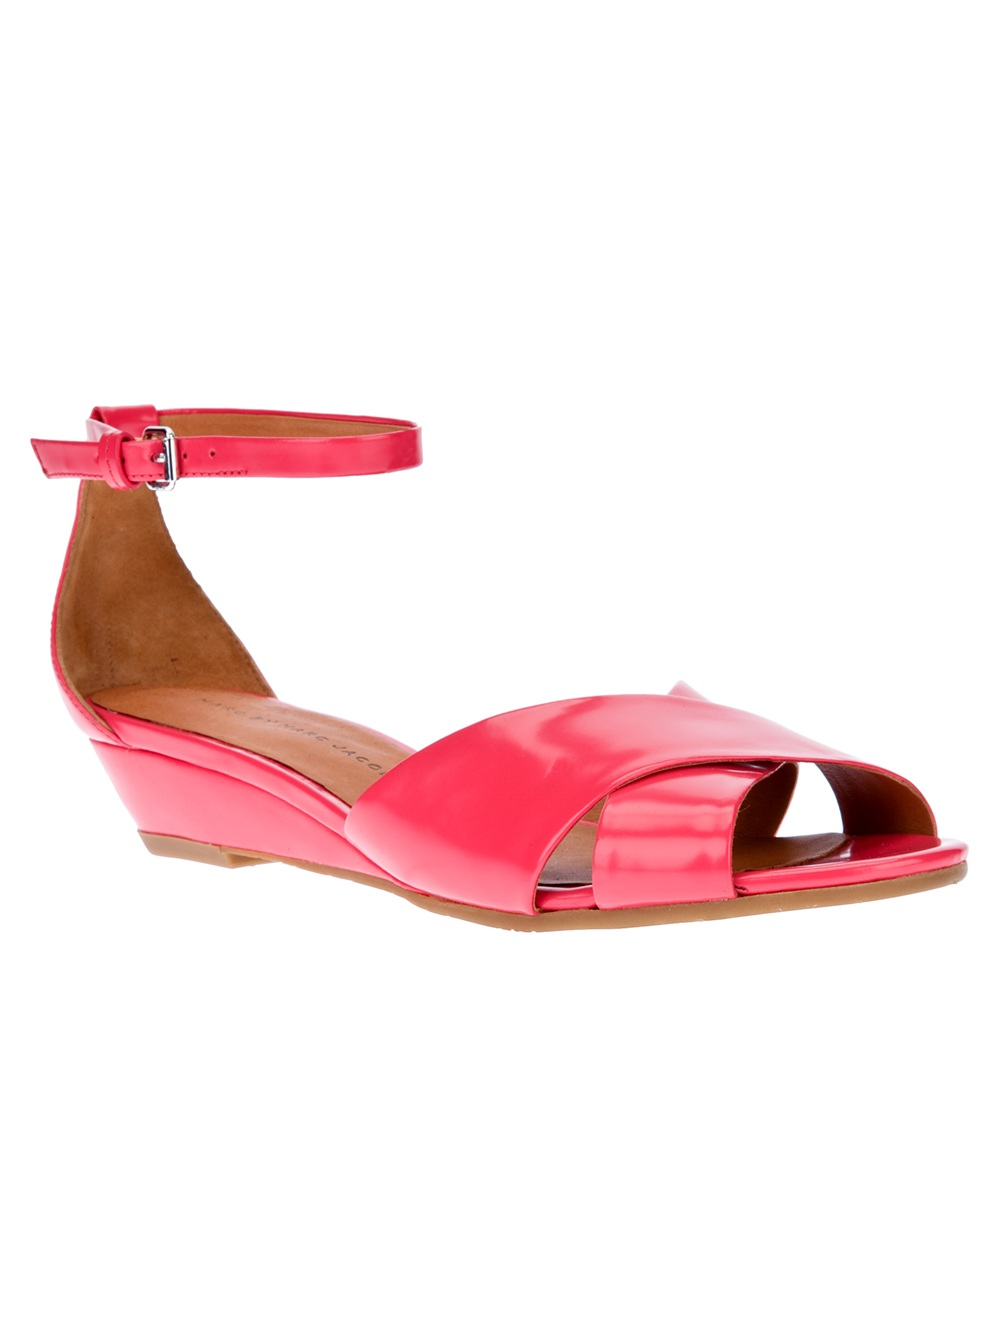 marc by marc low wedge sandal in pink lyst